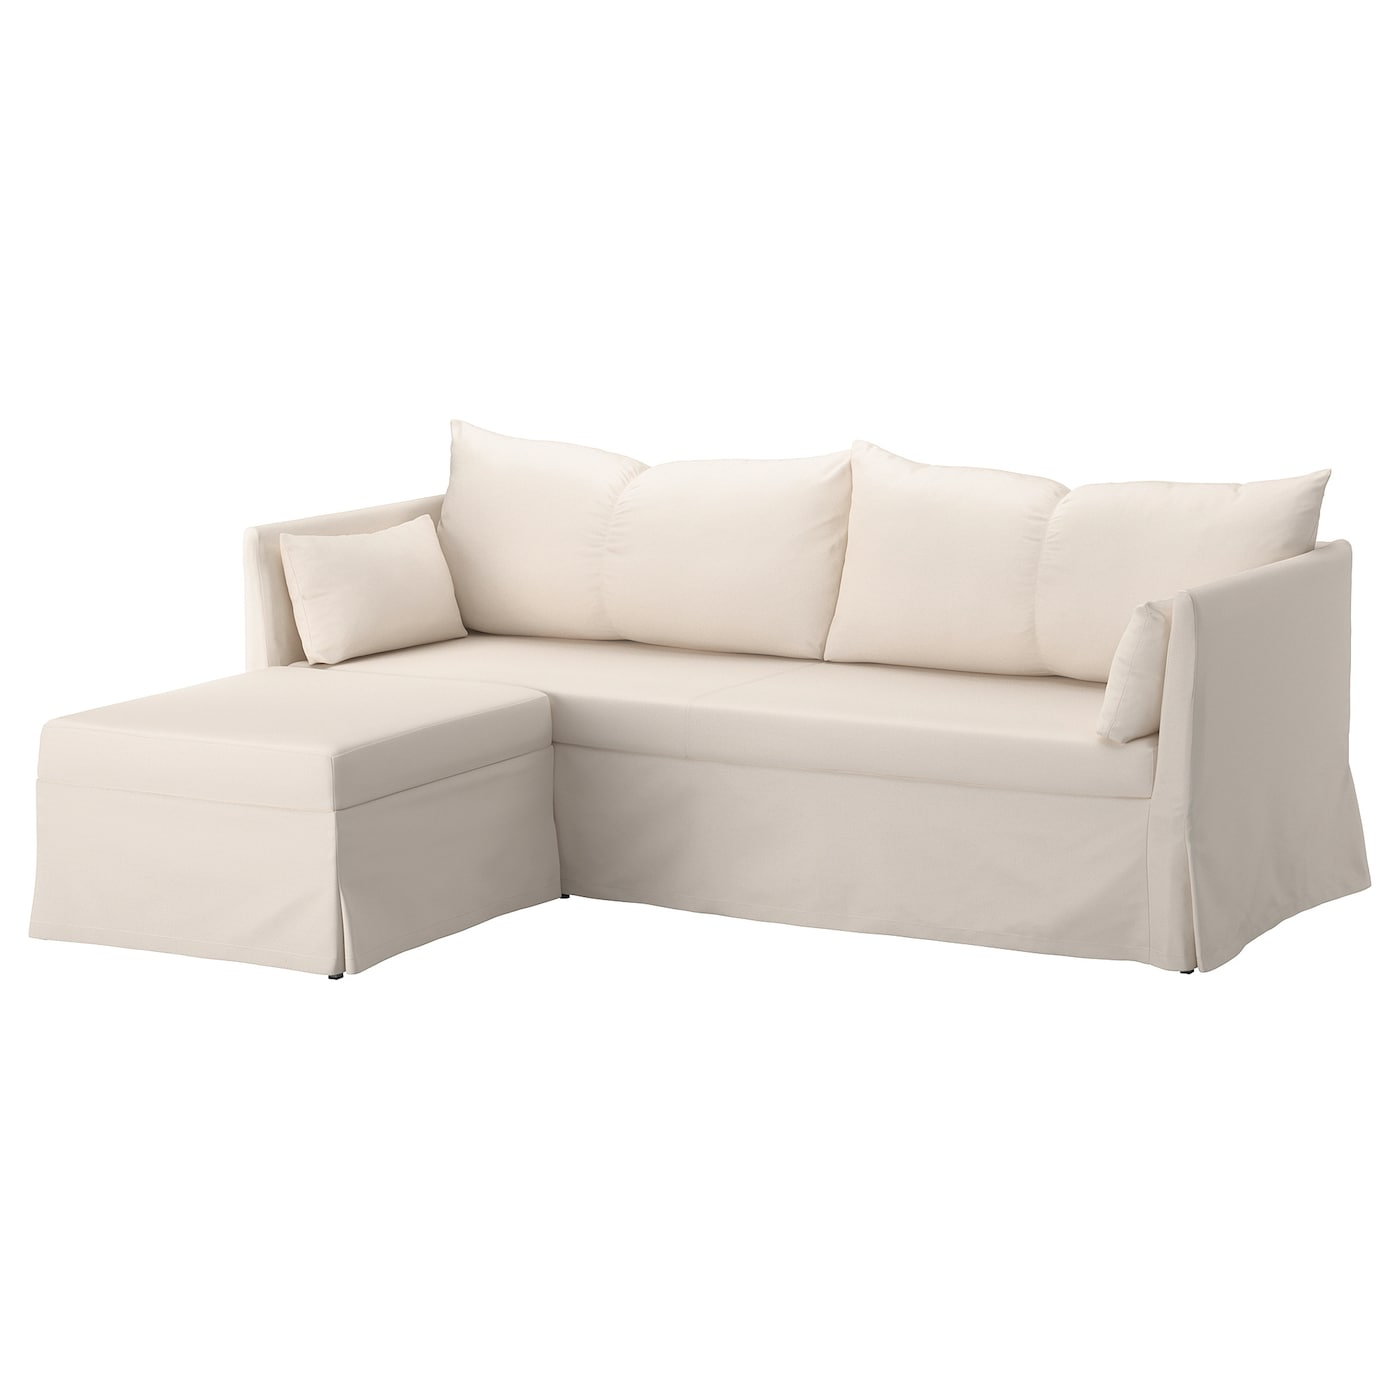 sofa beds corner sofa beds futons ikea rh ikea com ikea fabric sofa bed Sofa Beds for Small Spaces